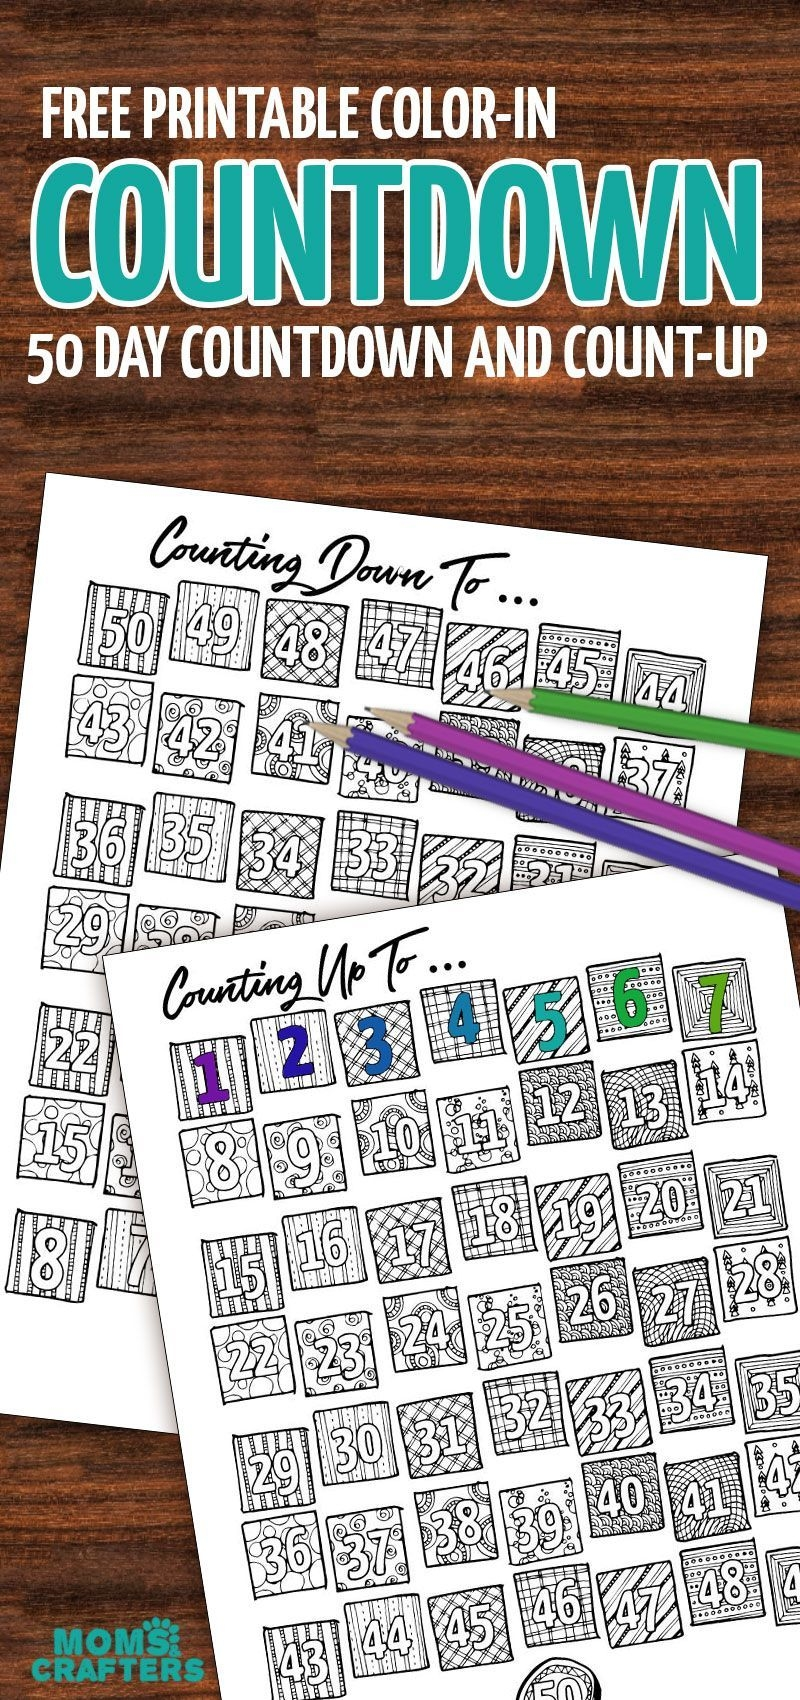 grab this fun color in countdown and progress tracker